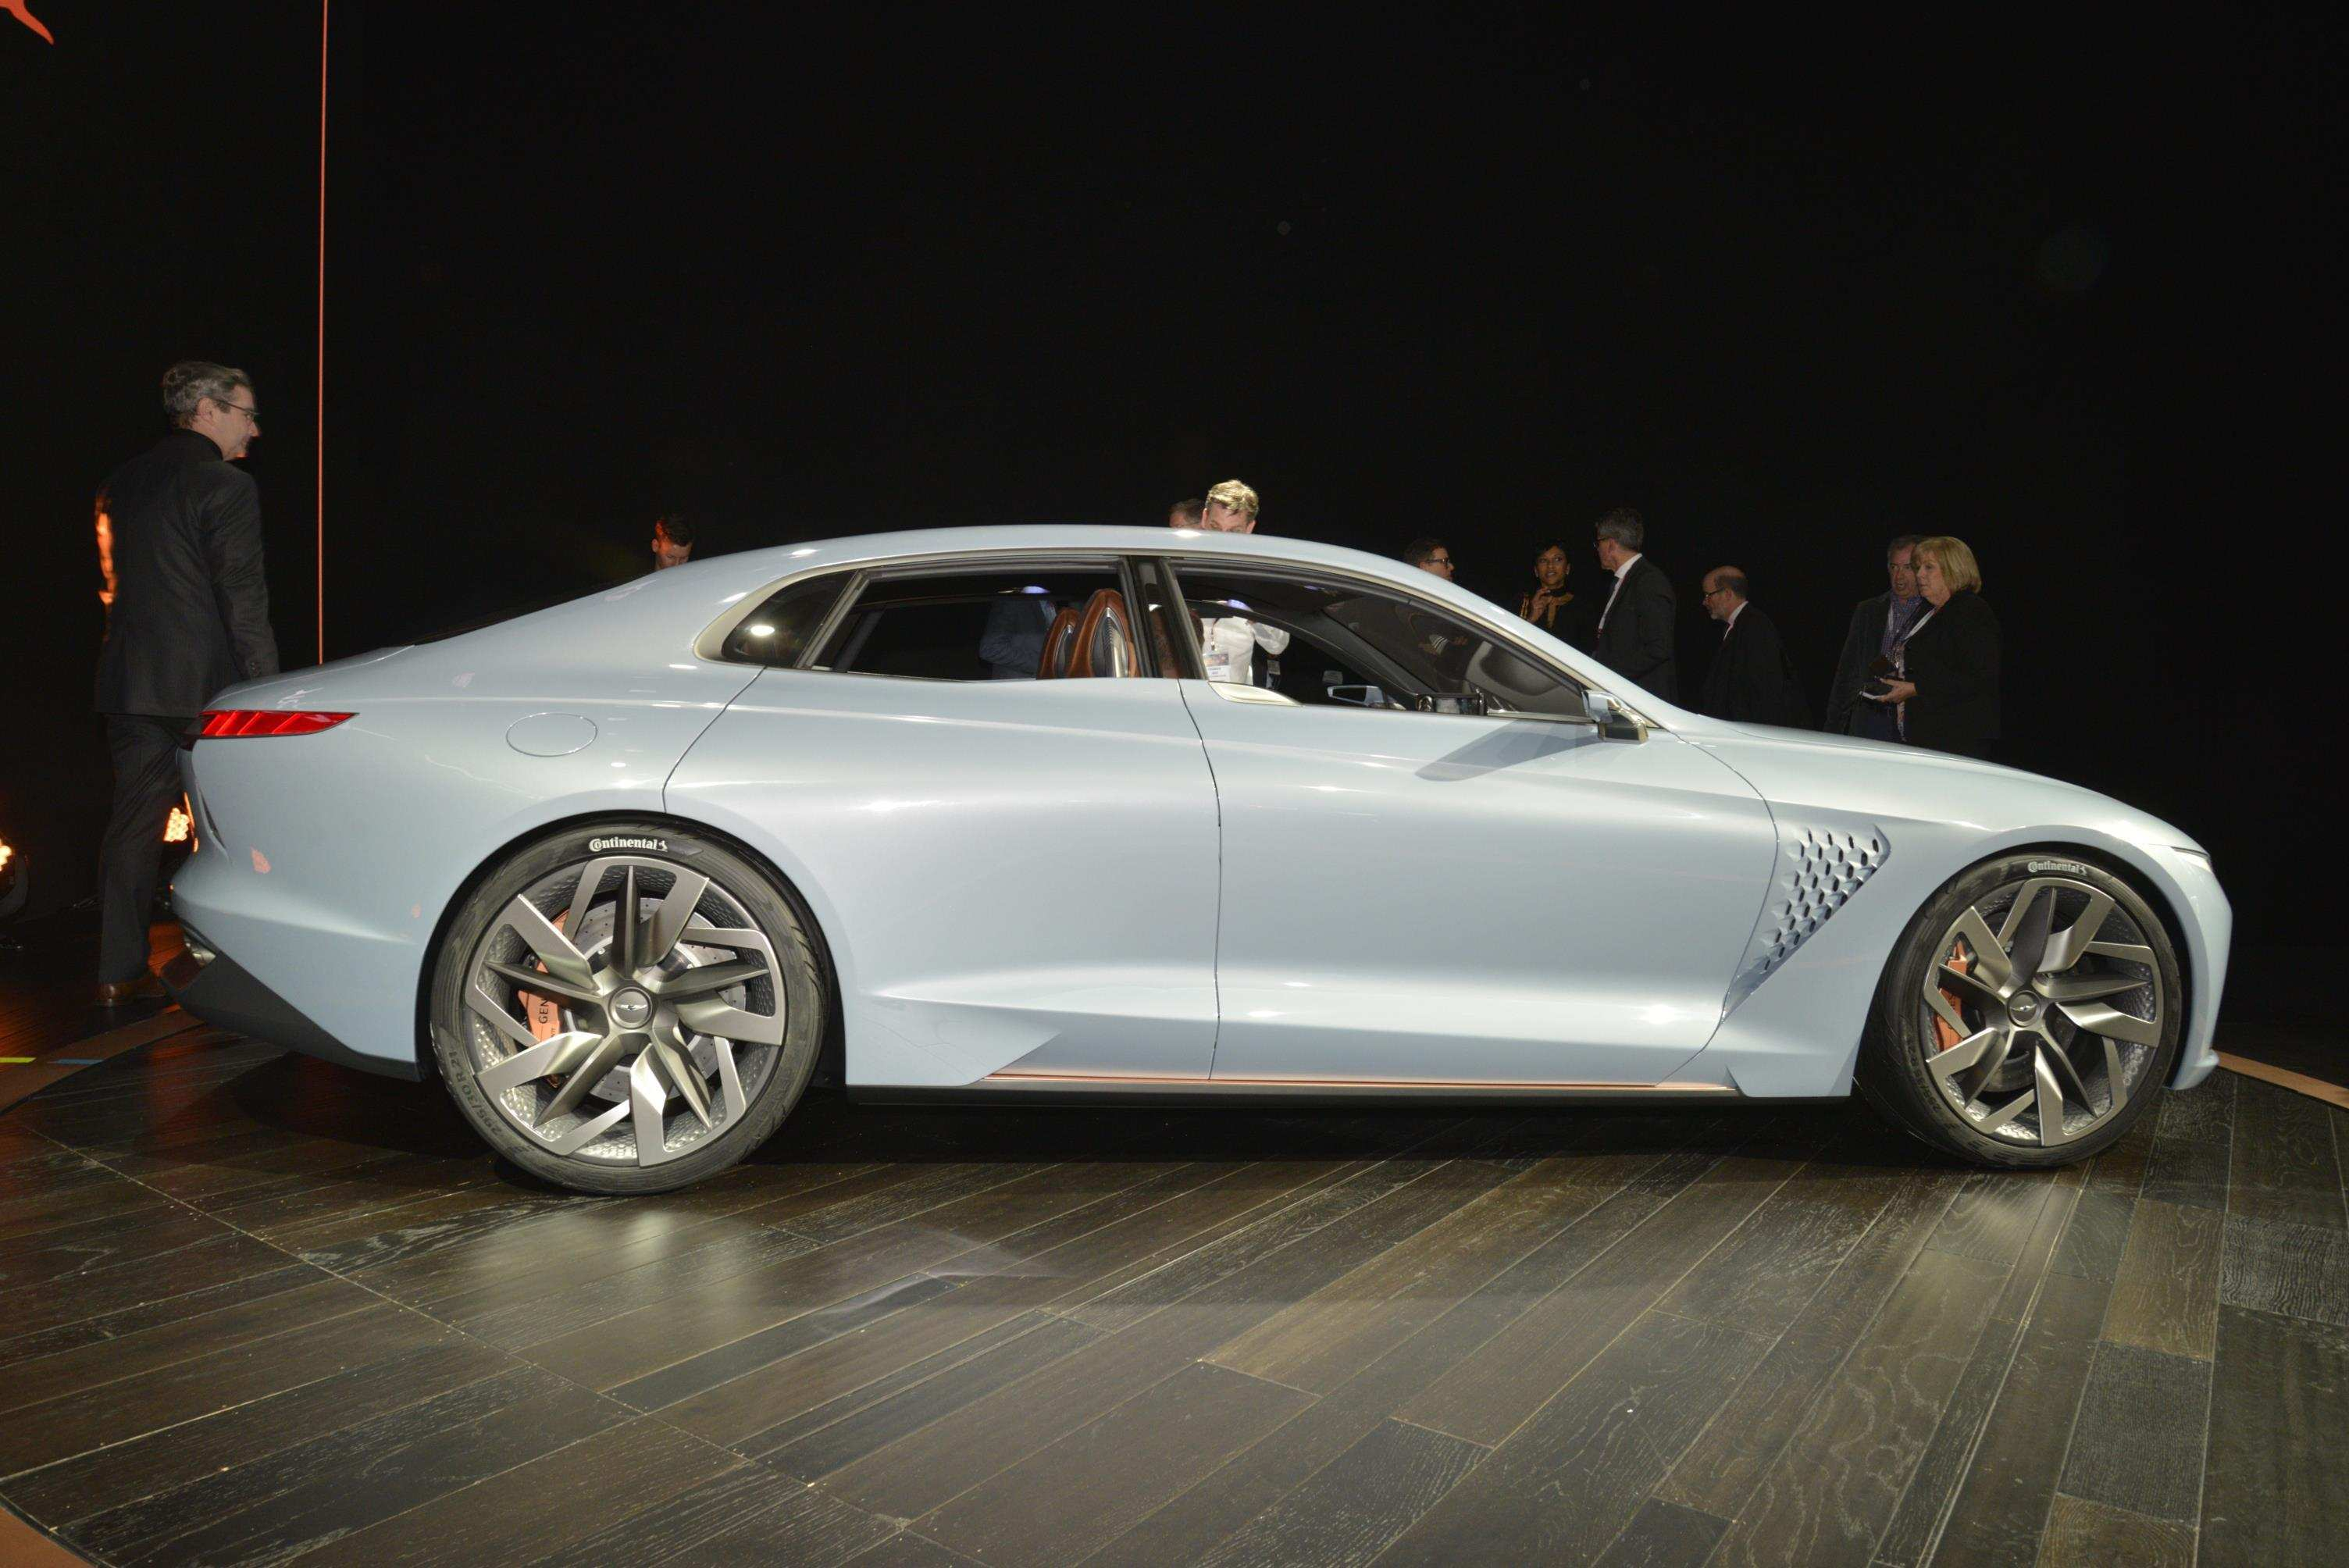 84 New Hyundai Coupe 2020 Picture